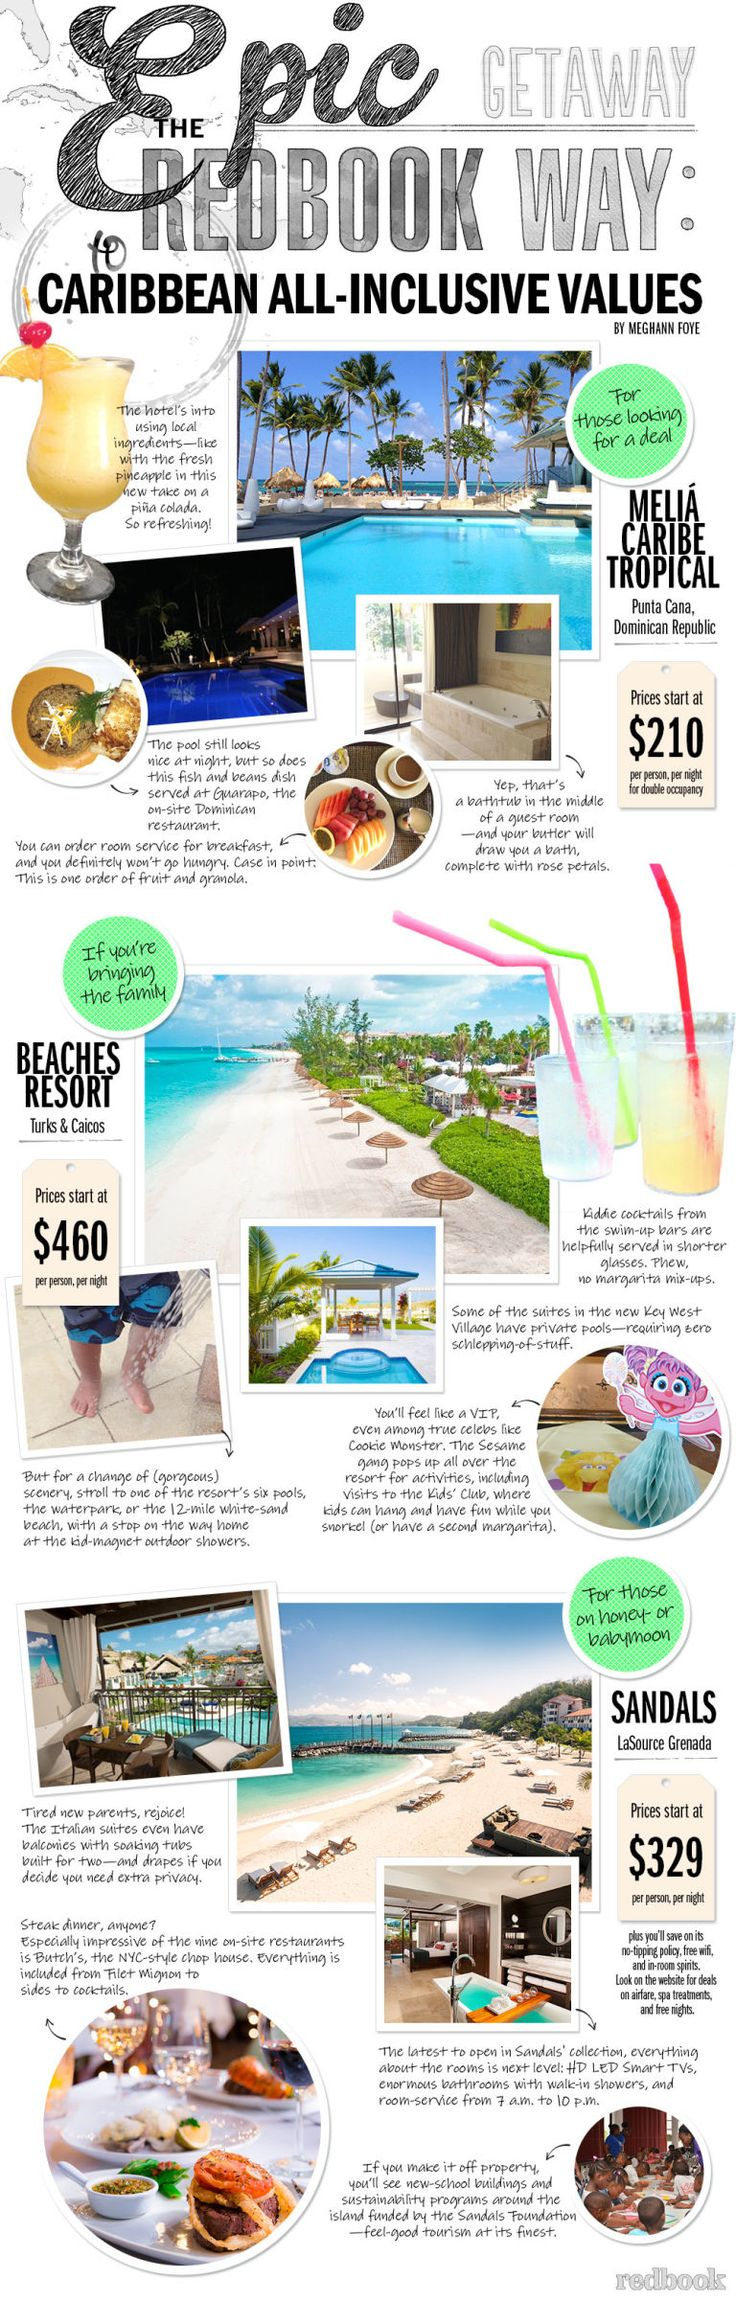 The Best All-Inclusive Caribbean Getaways  - Redbook.com